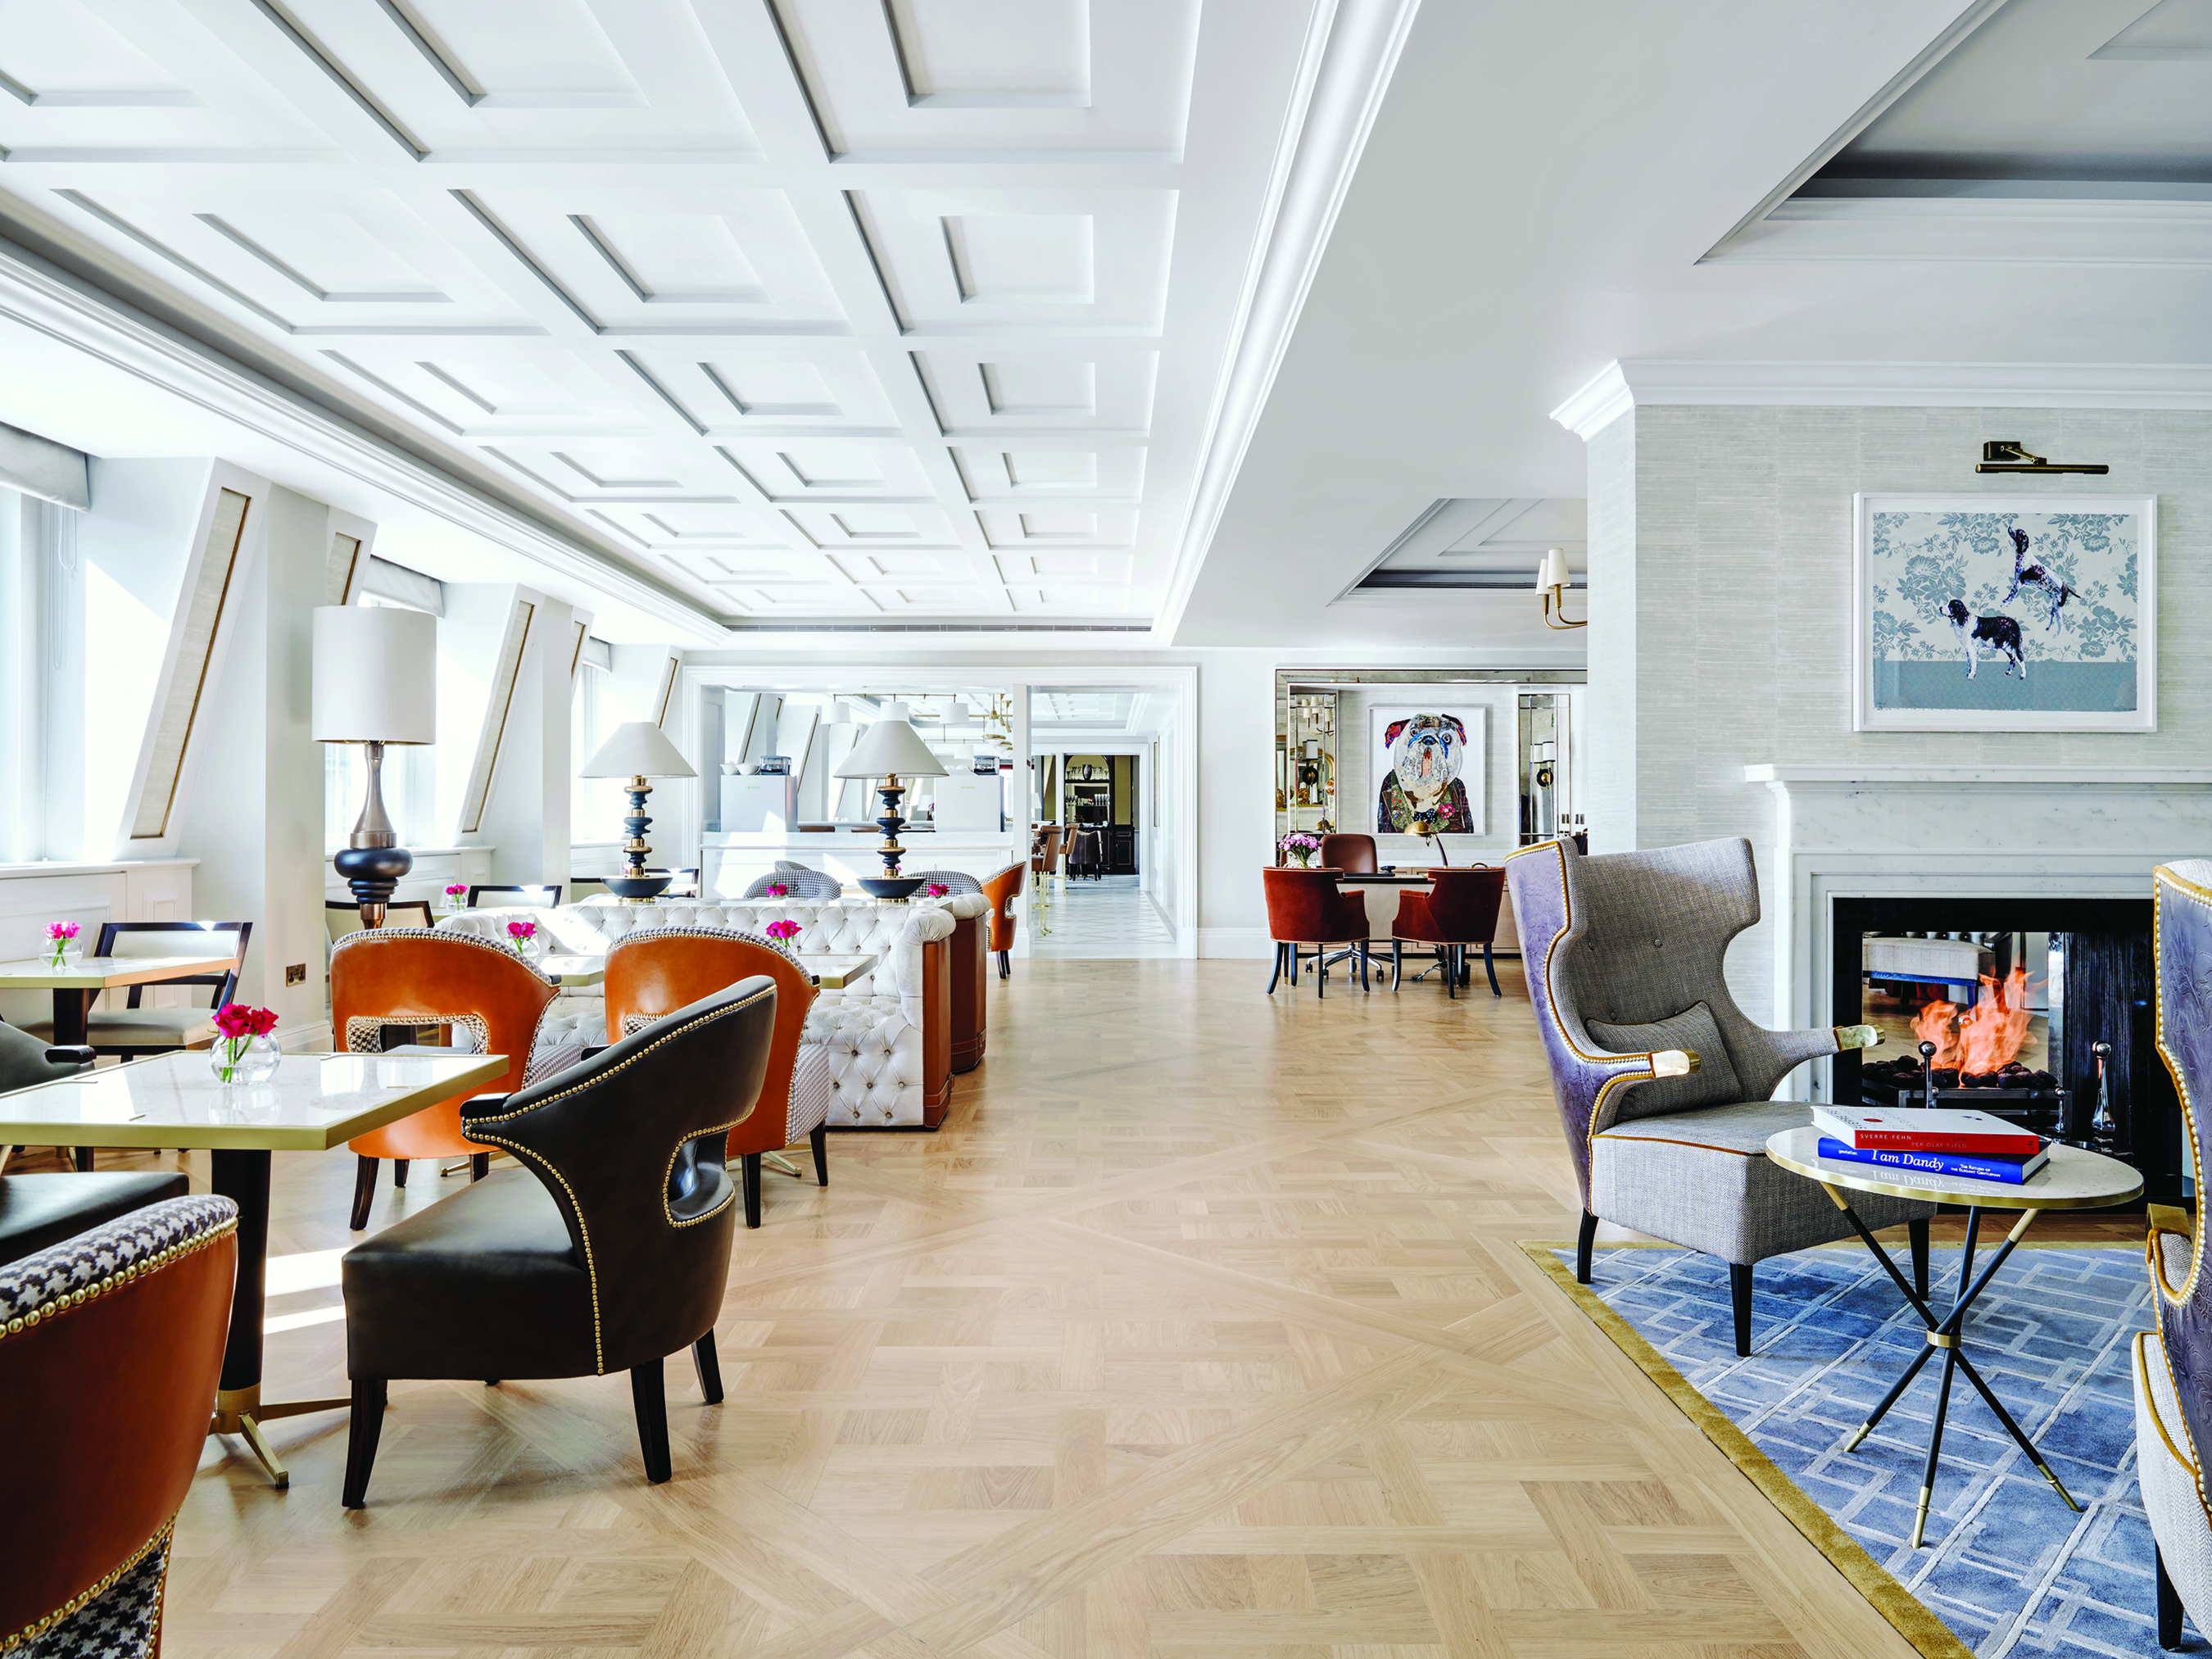 Discover The Best Hospitality Design Projects From Brabbu Contract  brabbu contract Discover The Best Hospitality Design Projects From Brabbu Contract The Langham London Hotel Richmond International UK